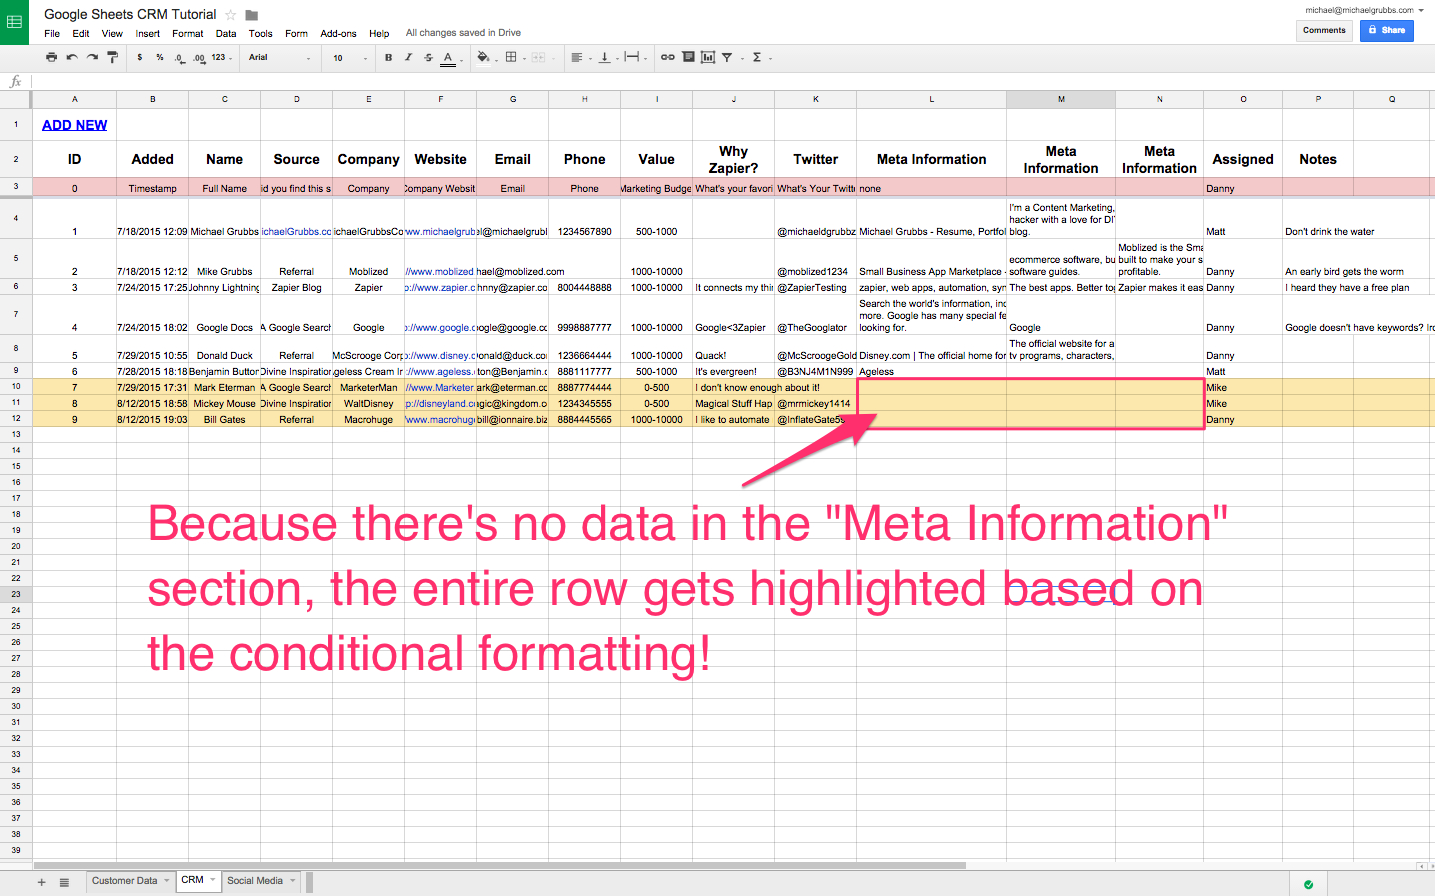 Spreadsheet Worksheet With Spreadsheet Crm: How To Create A Customizable Crm With Google Sheets